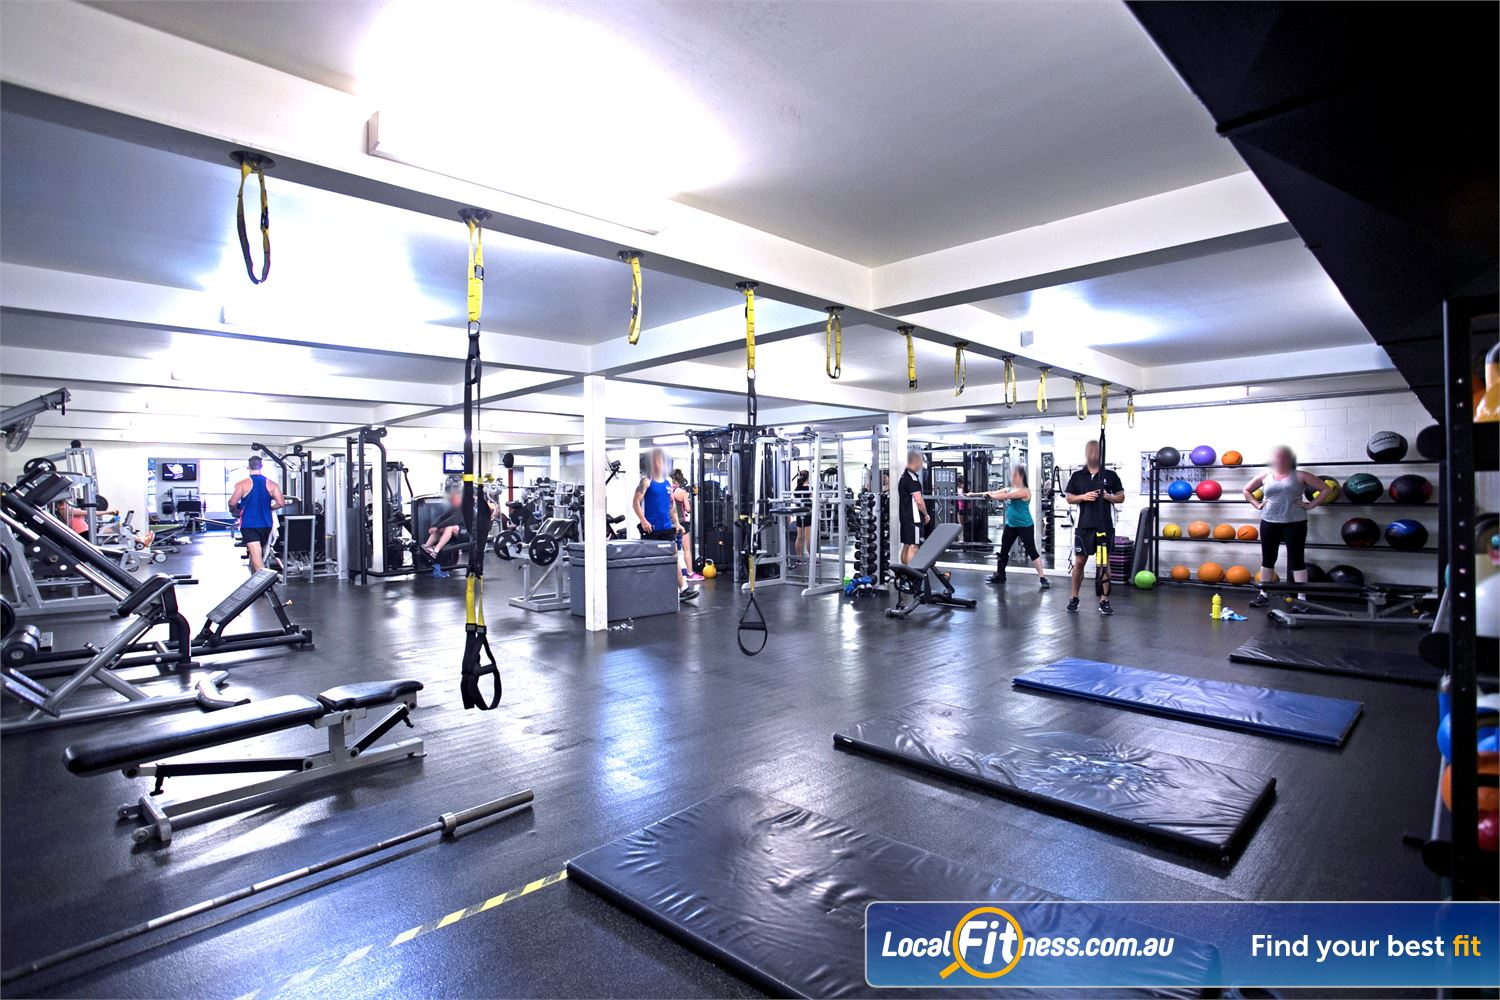 Goodlife Health Clubs Mitcham Kingswood Our Kingswood gym features a functional training zone including TRX.